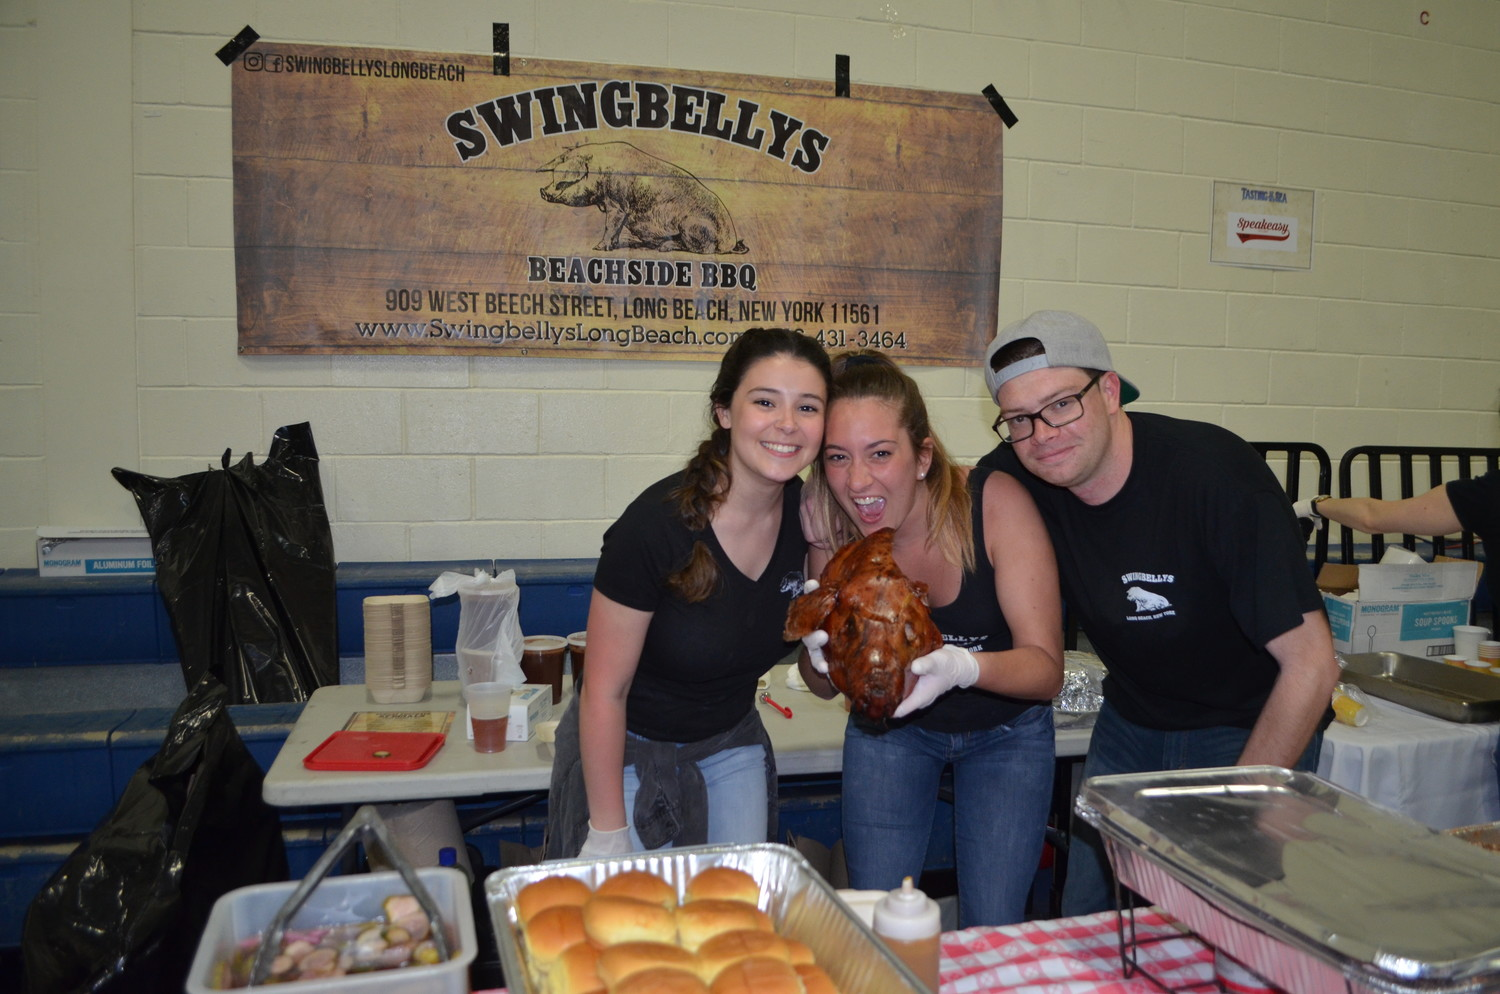 Gianna Yenna, left, Jessica King and Ryan Moroney of Swingbellys served pulled pork sliders.